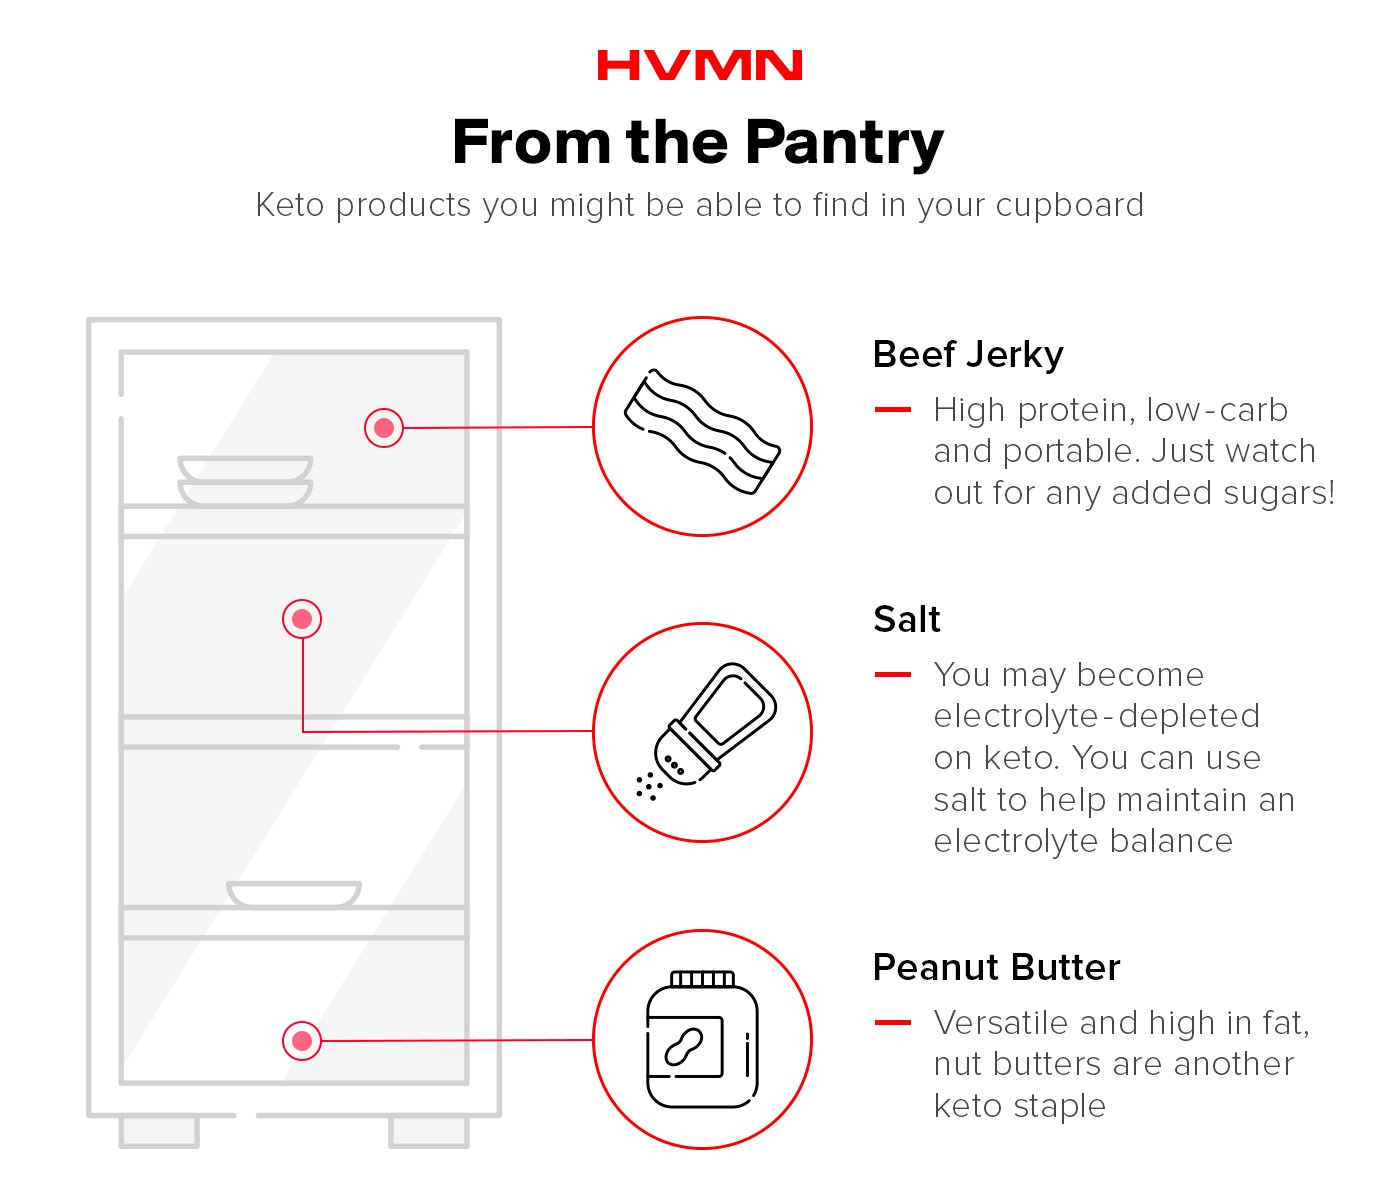 An illustration of a pantry with beef jerky, salt and peanut butter, showing which keto items might be around your cupboard